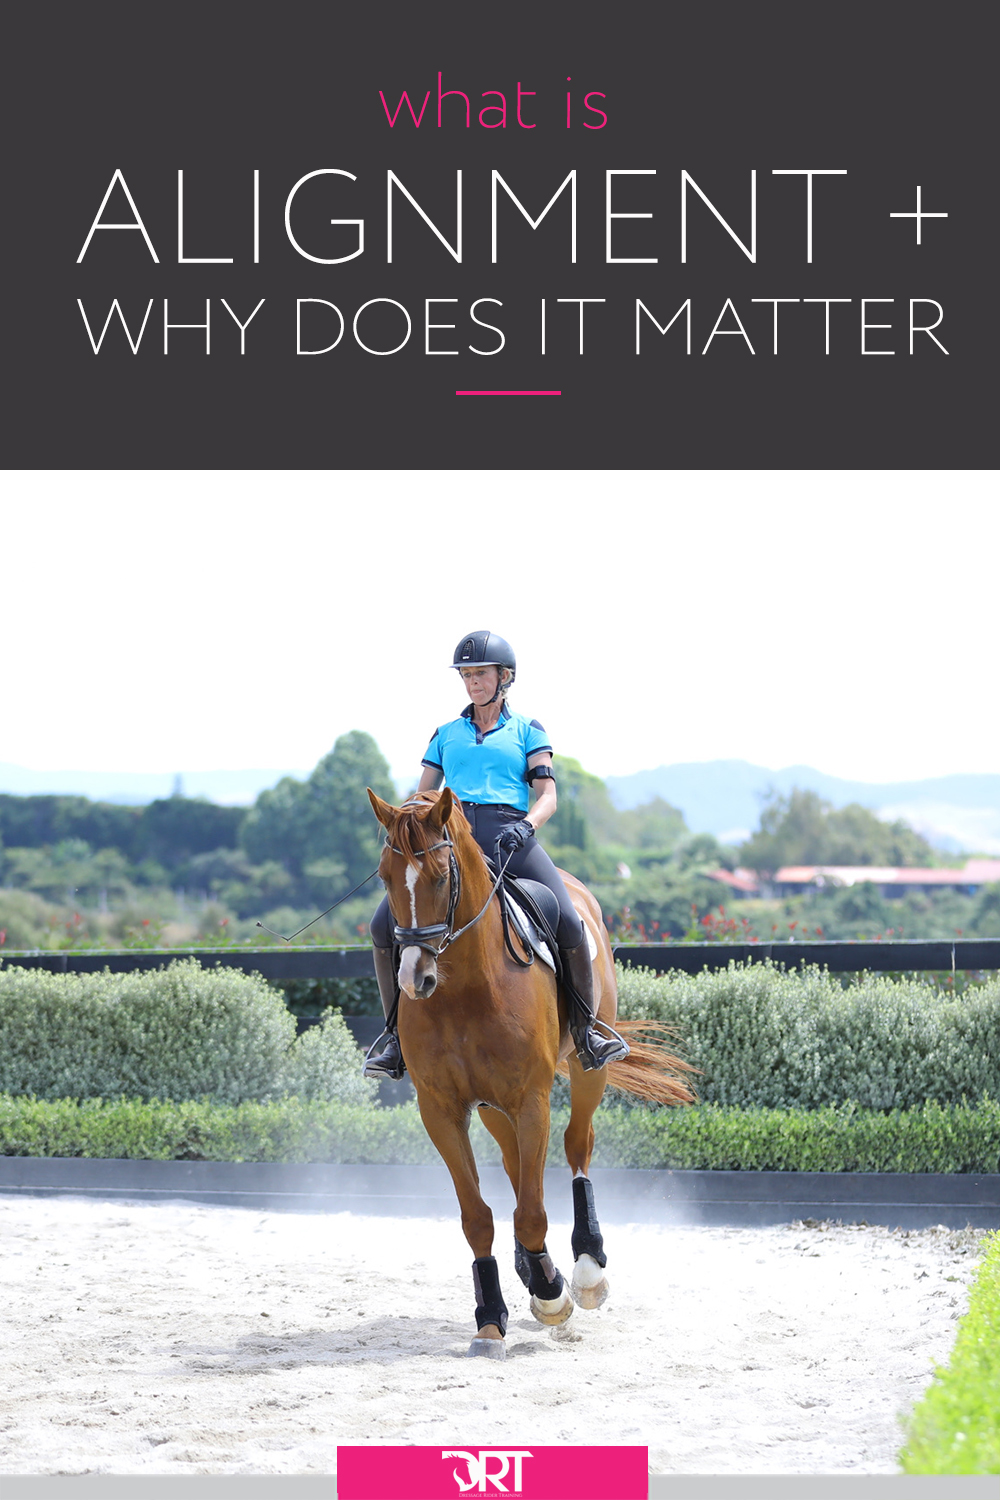 What does it mean to be aligned in dressage and how to you achieve this as a rider? In this article I go into detail about it and also why it matters. #dressage #dressagerider #dressagetraining